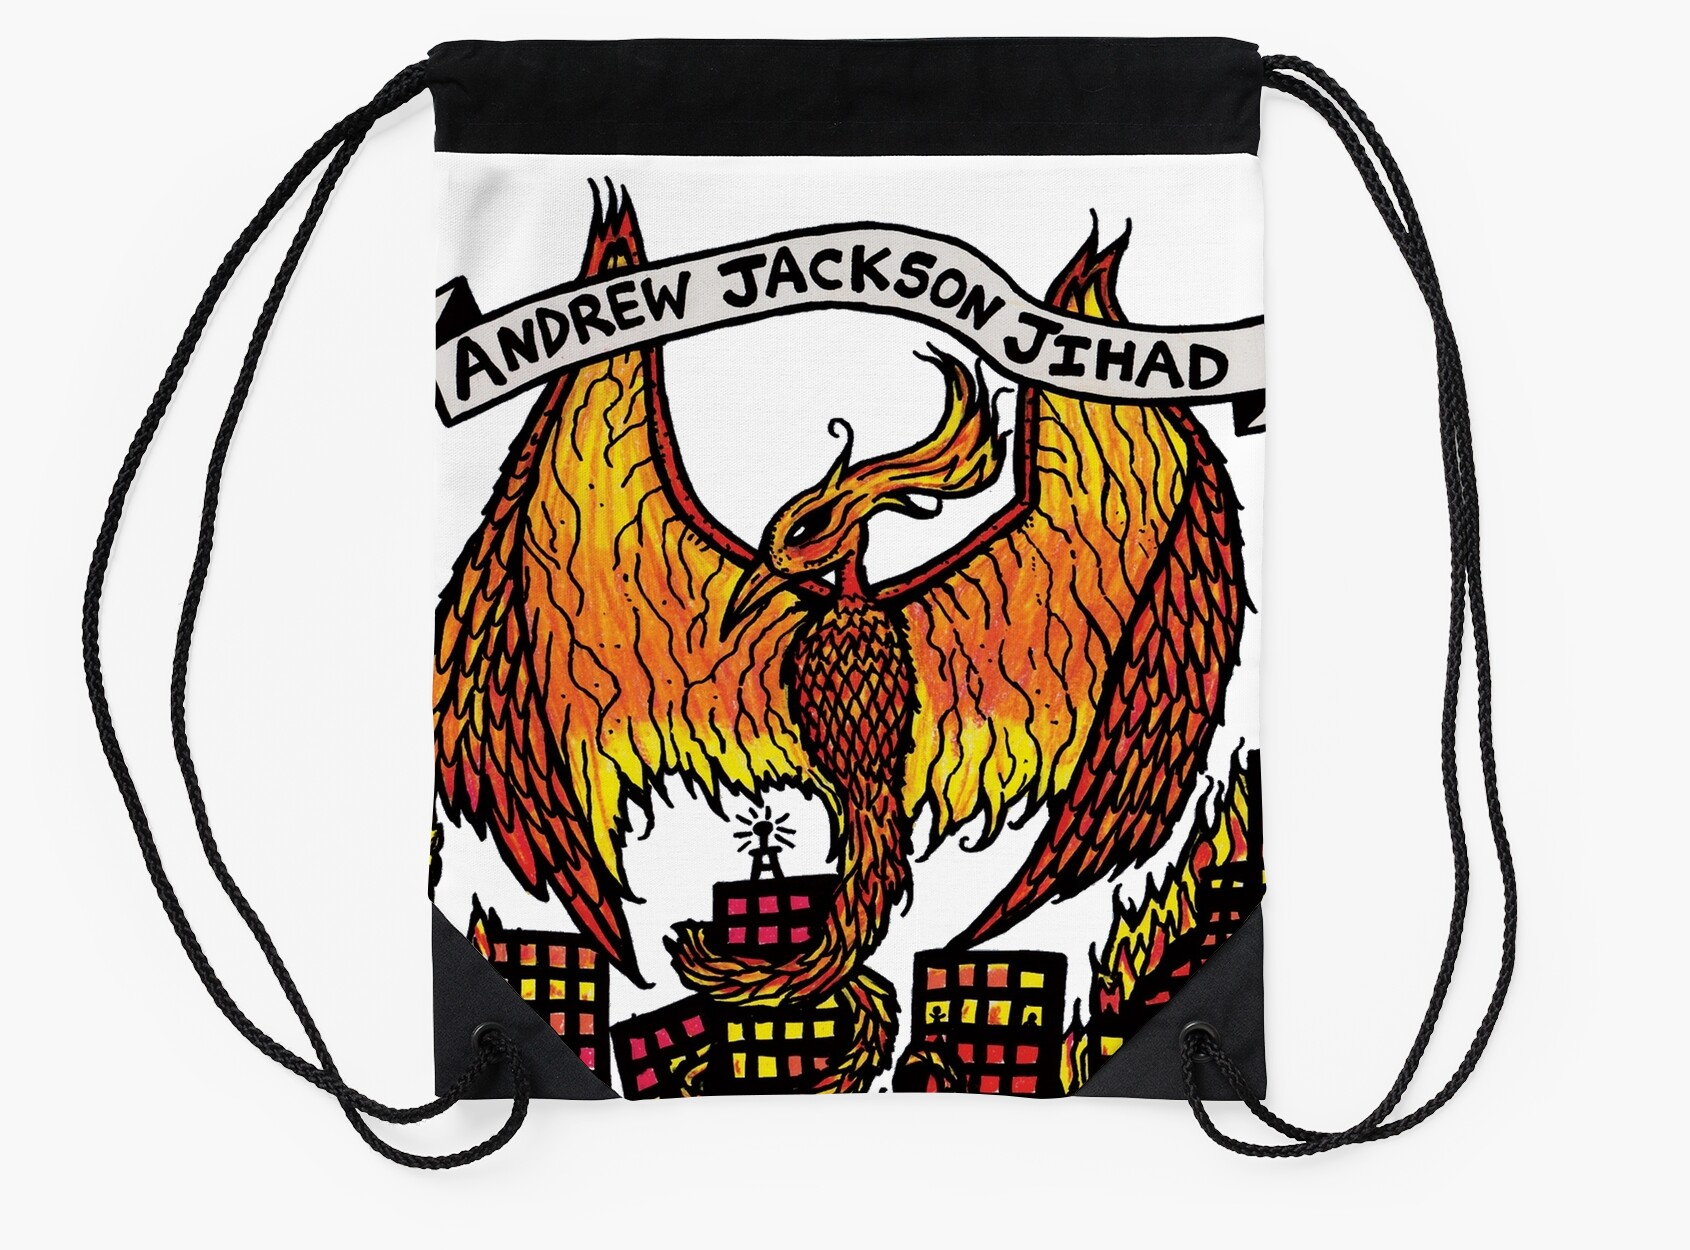 "Andrew Jackson Jihad Rare Chandeliers"" Drawstring Bags by"